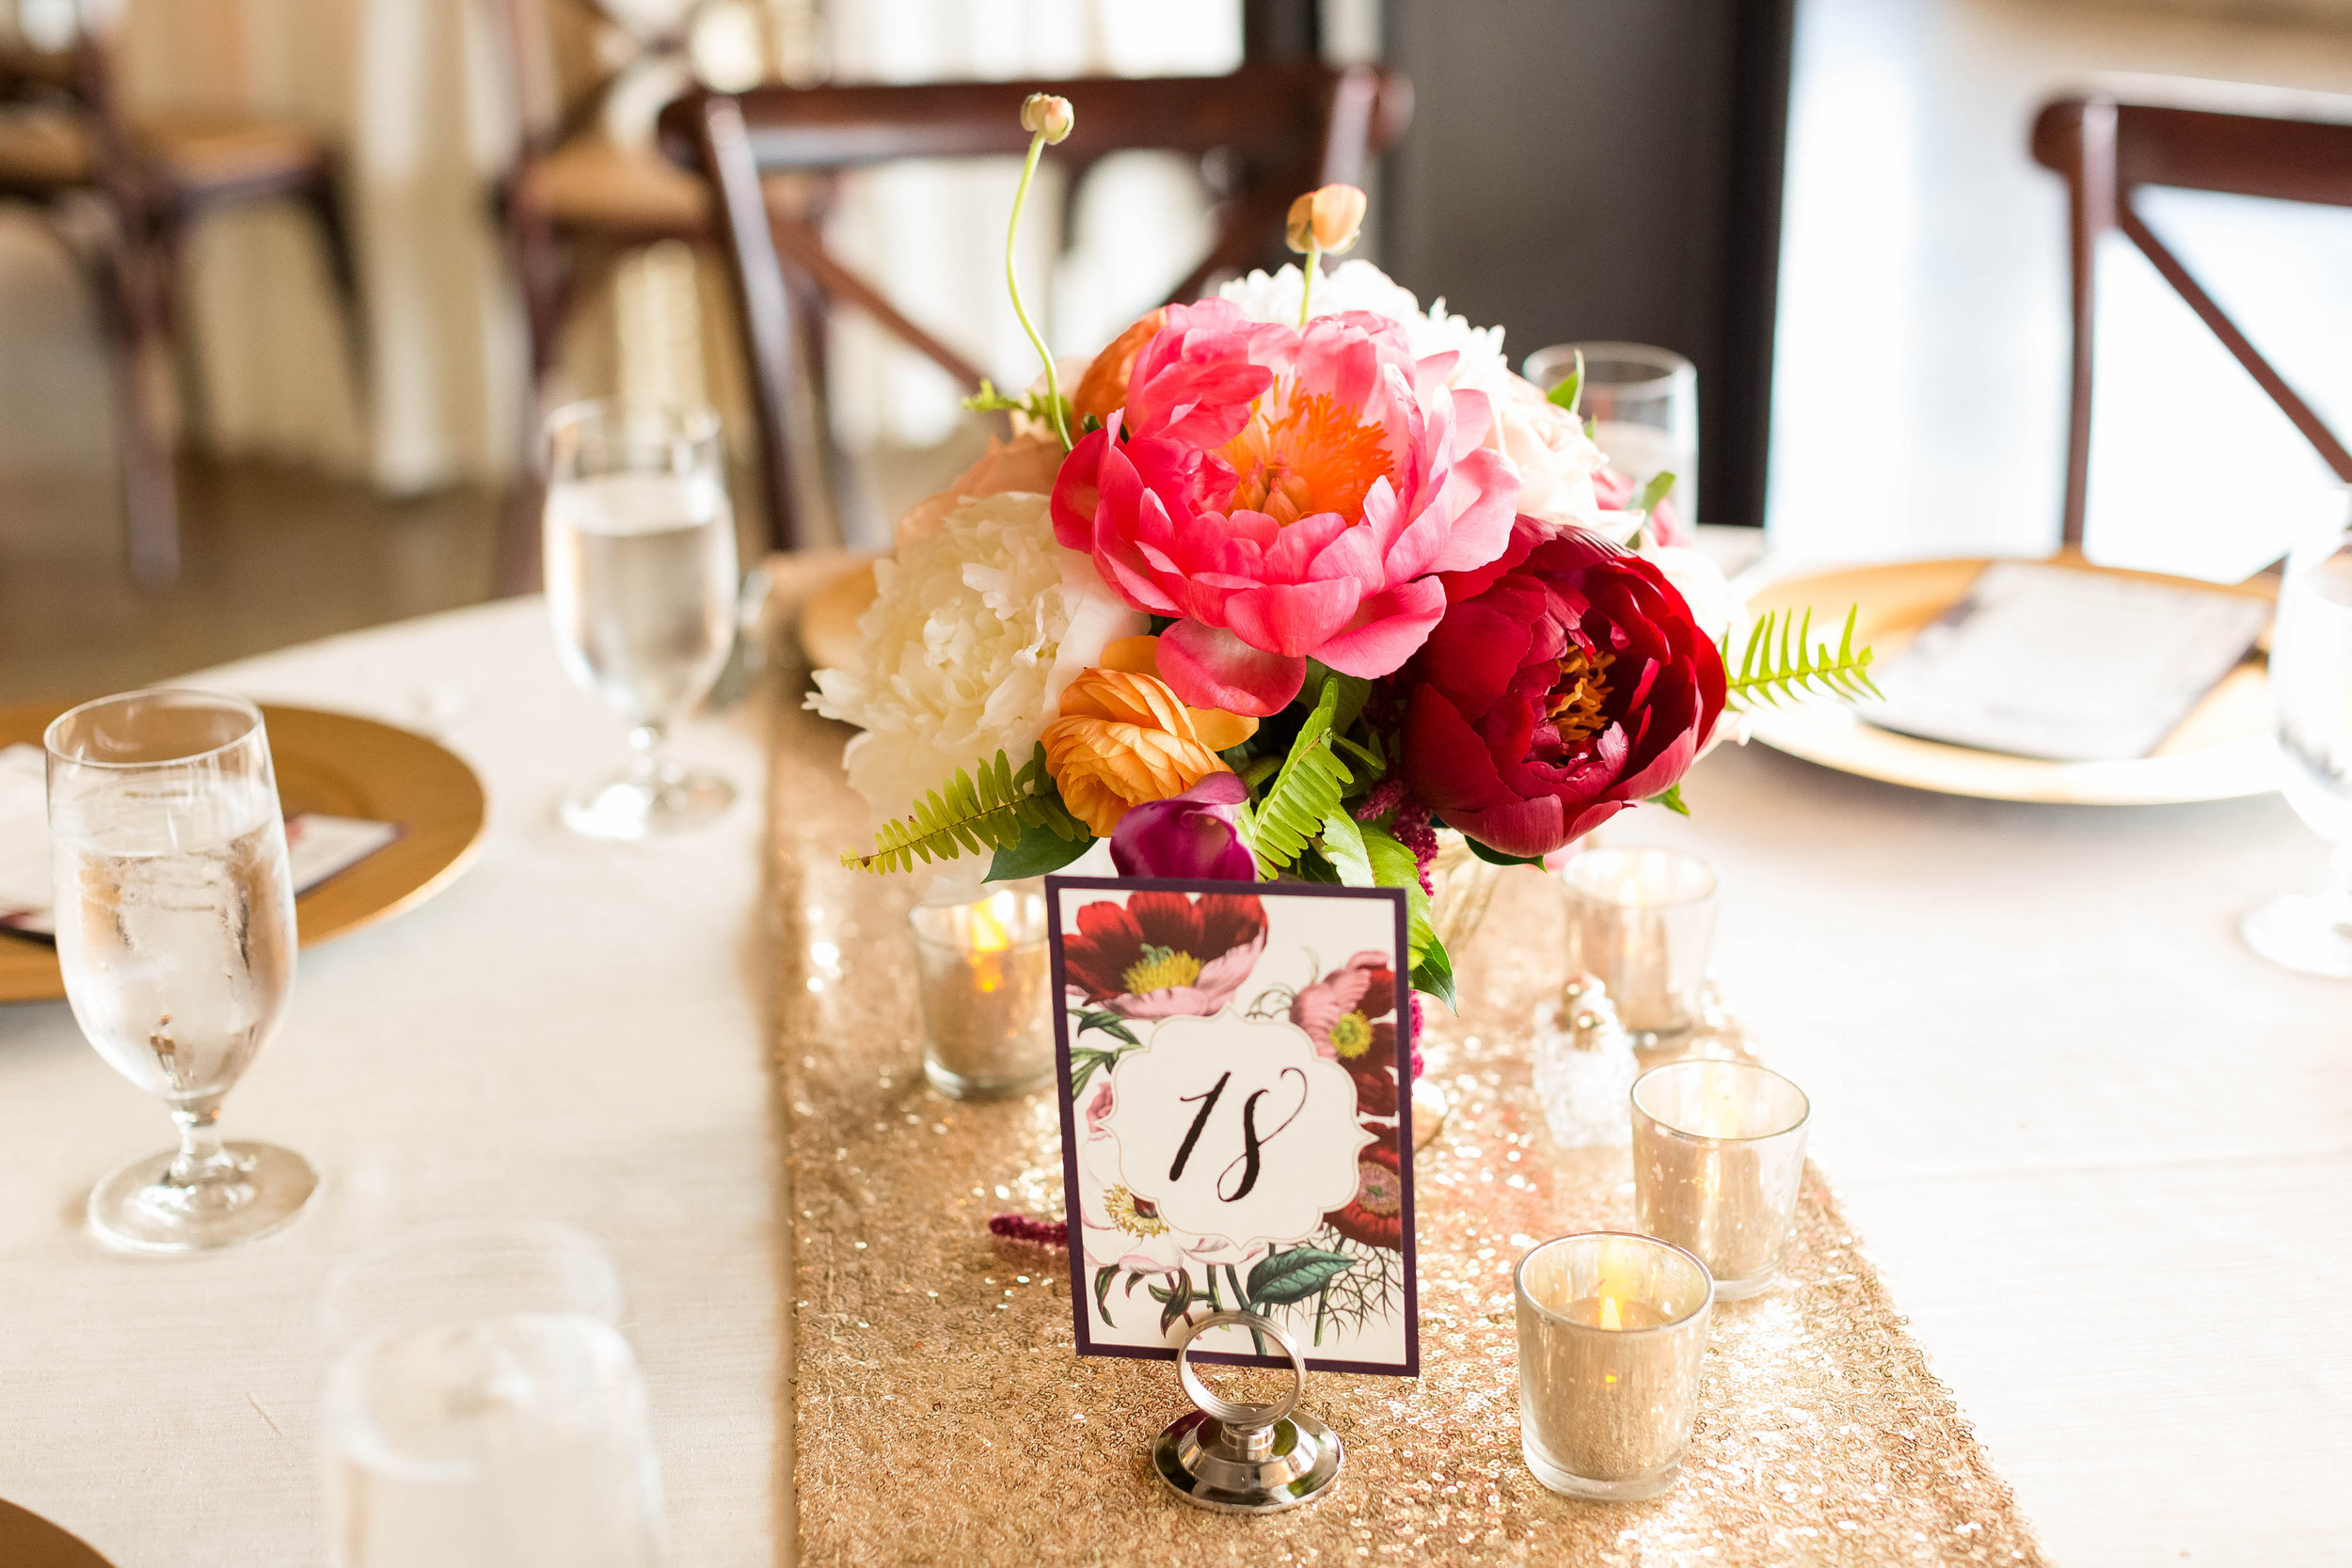 Nunley-Adele-flowers-table-number.jpg